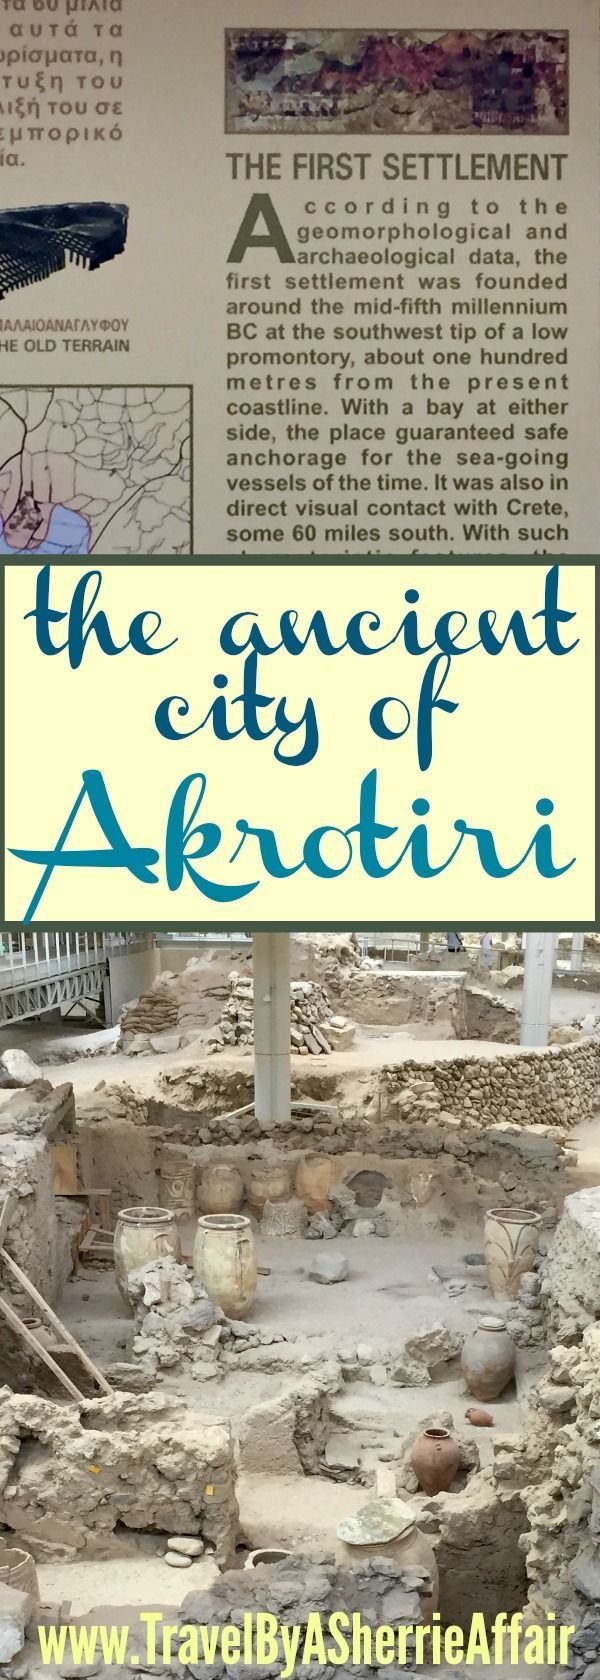 Akrotiri is a must visit when on the island of Santorini Greece.  An archaeological site that has a lot of history to see! #history #Archaeology #Greece #Santorini